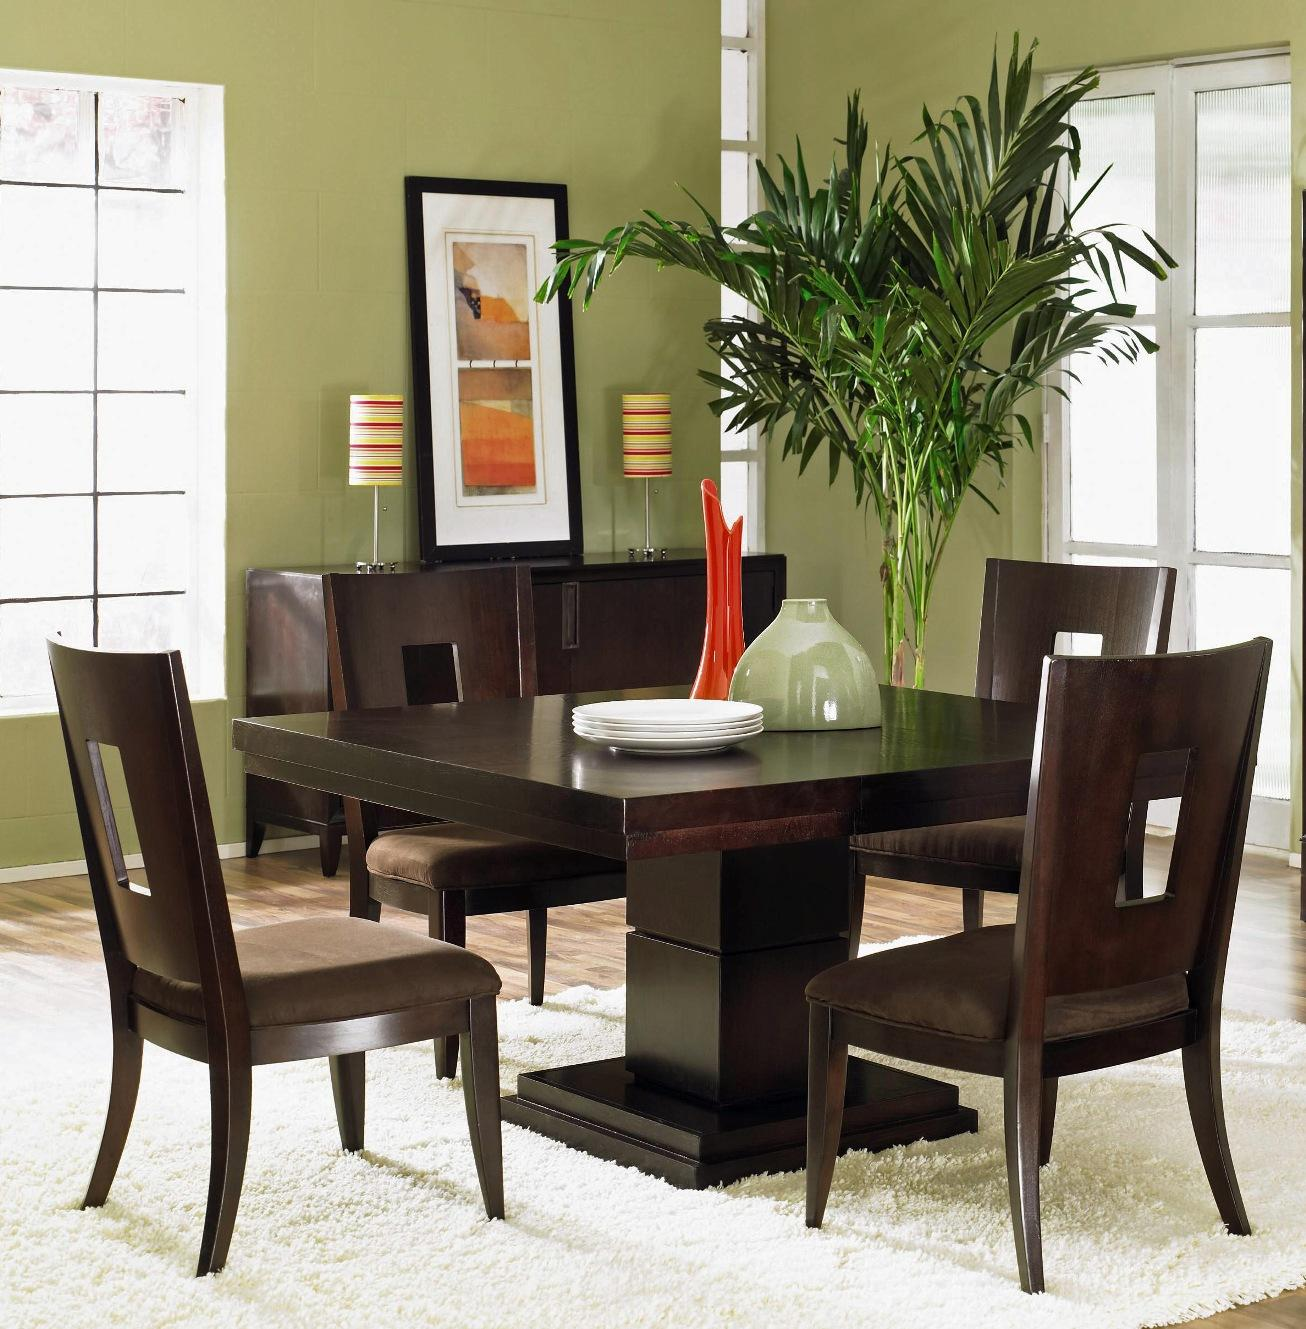 Dining Area Table Design And Style (View 4 of 18)